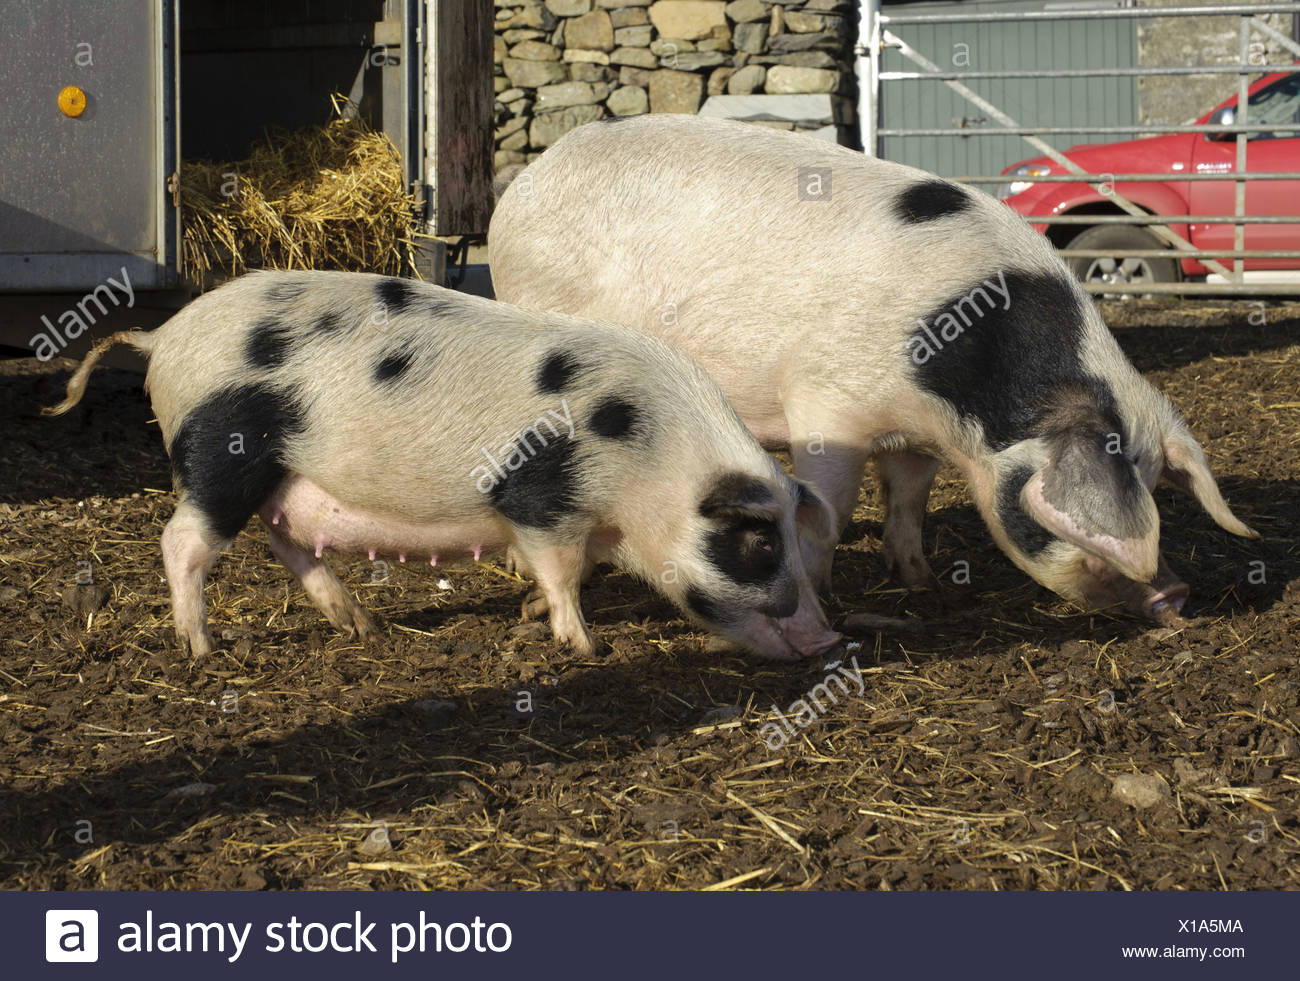 Domestic Pig Gloucester Old Spot sows normal smaller selectively bred sows part micro pig breeding process Cumbria England - Stock Image